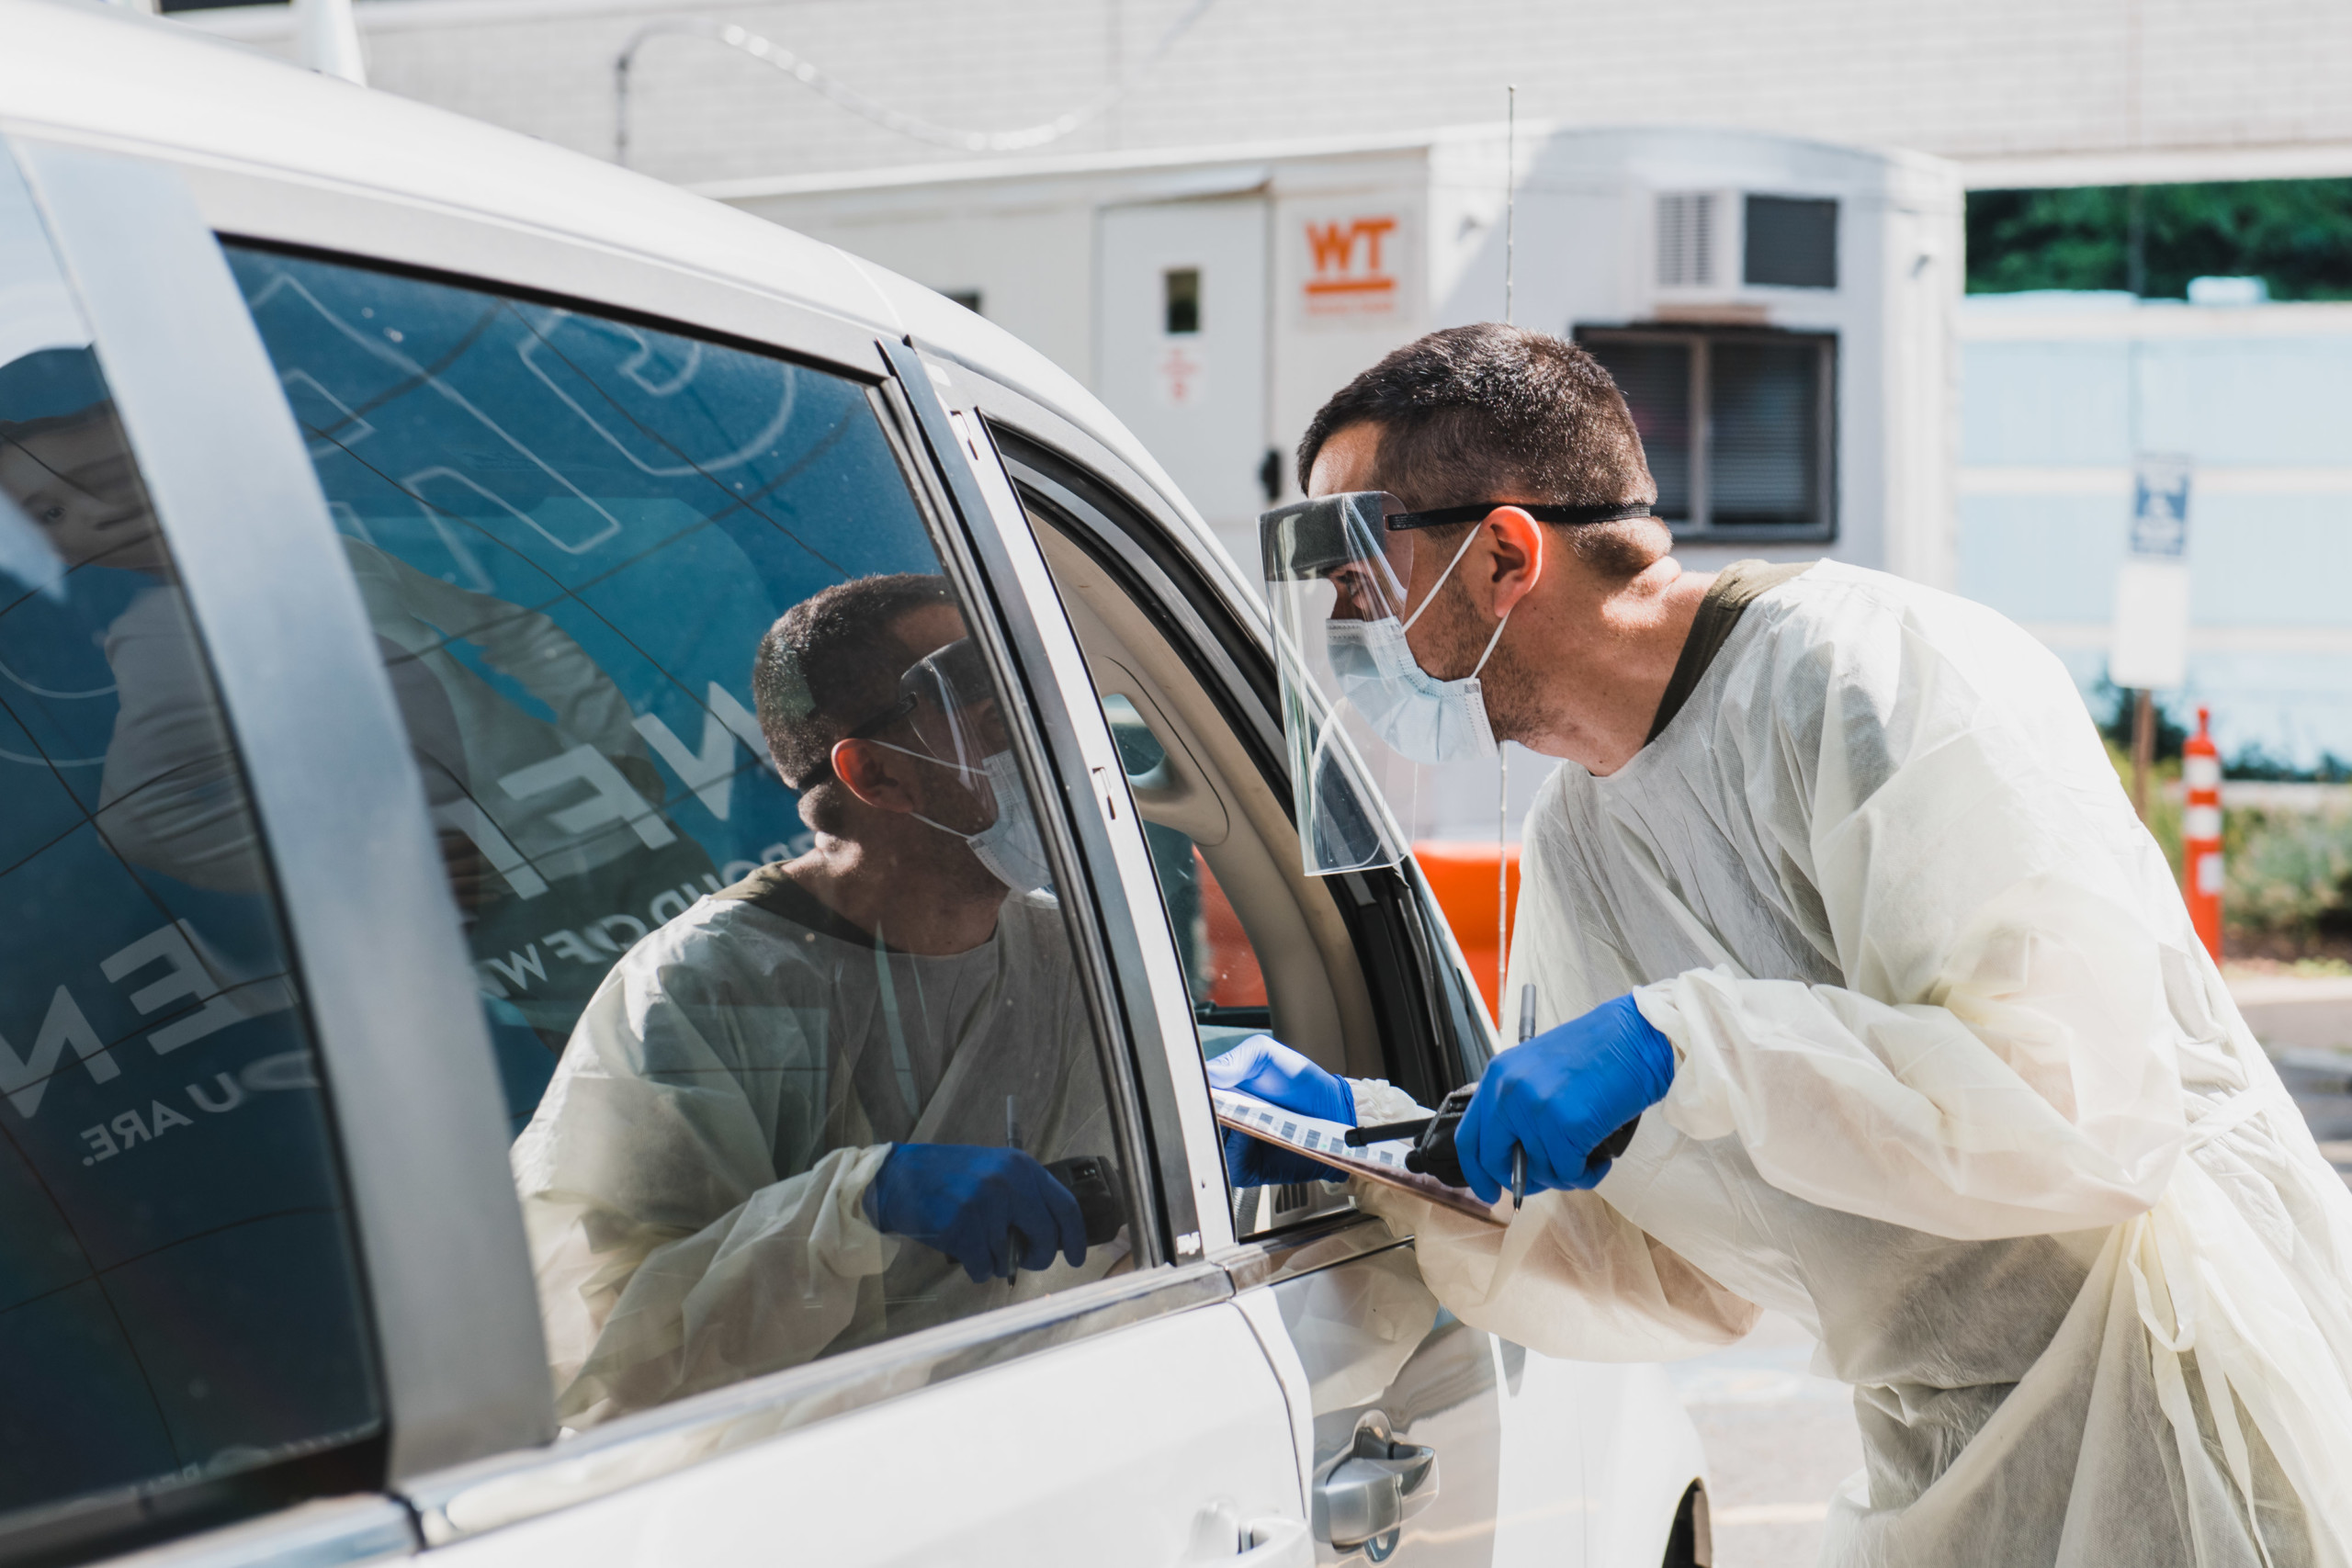 Team member in full PPE hands paperwork to family during drive-through COVID-19 testing